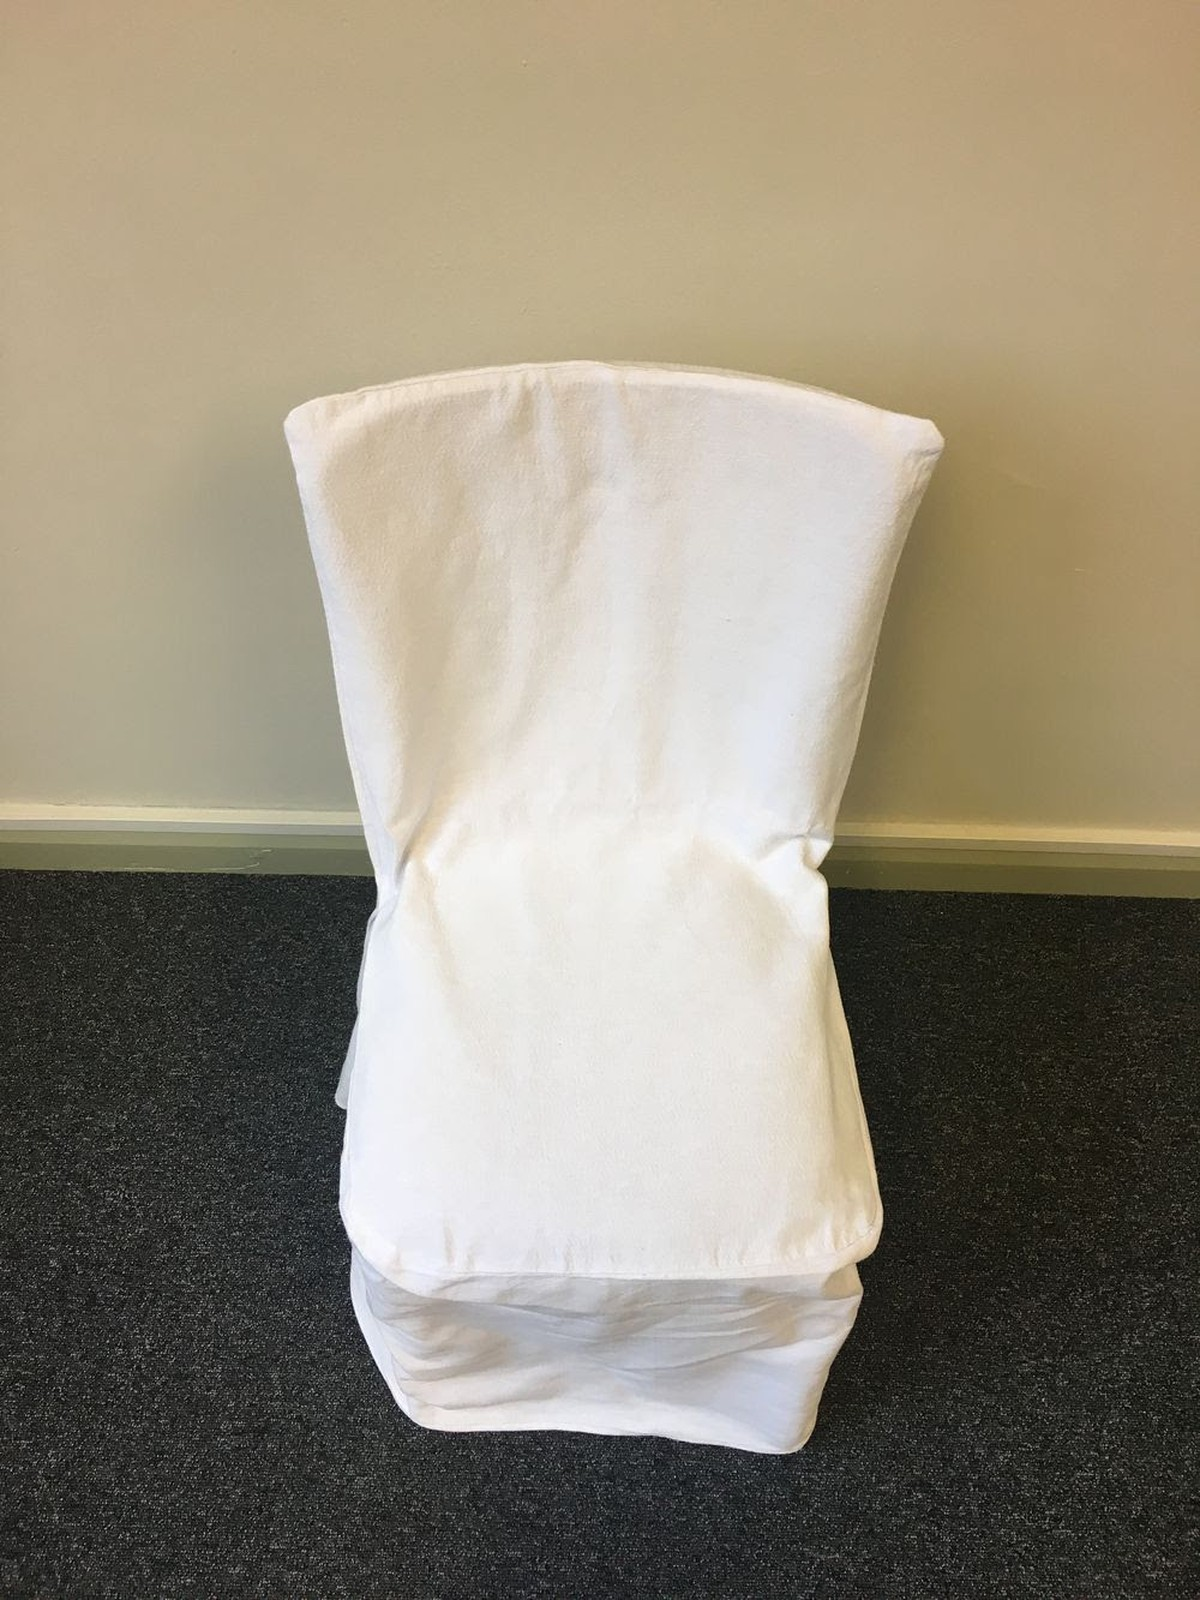 used folding chair covers for sale bronze metal chairs new banquet rtty1